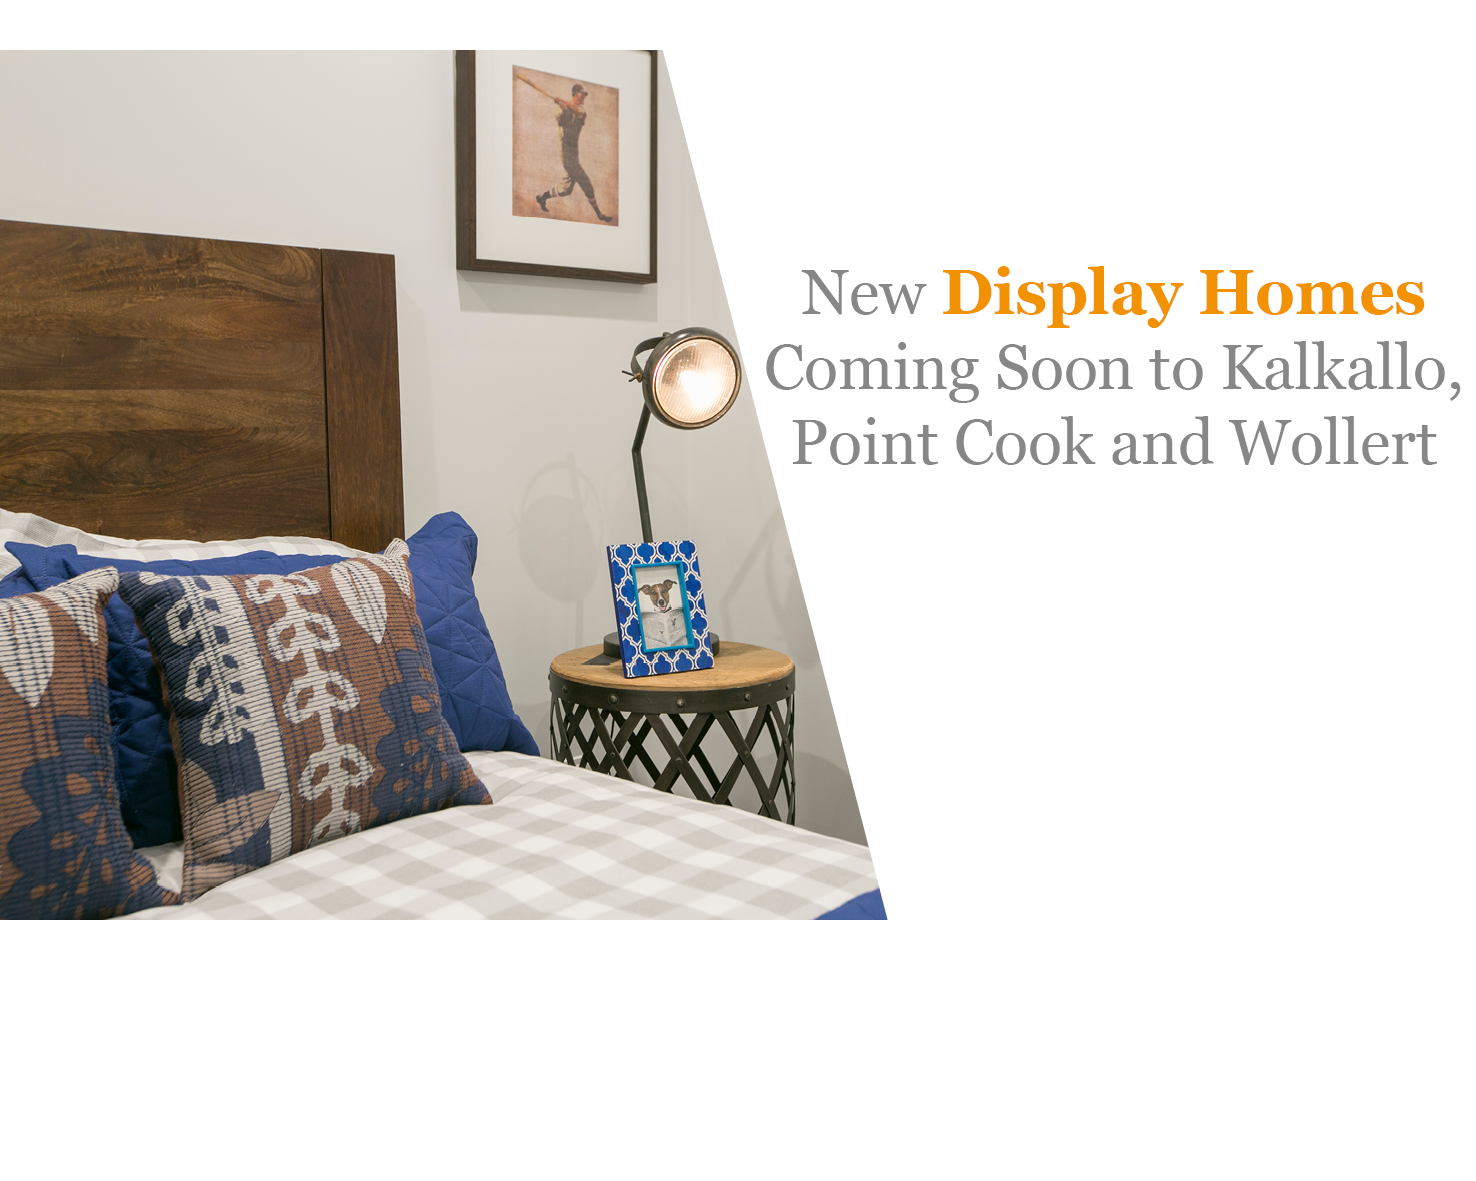 New-Displays-at-Kalkallo-point-cook-and-wollert-coming-soon